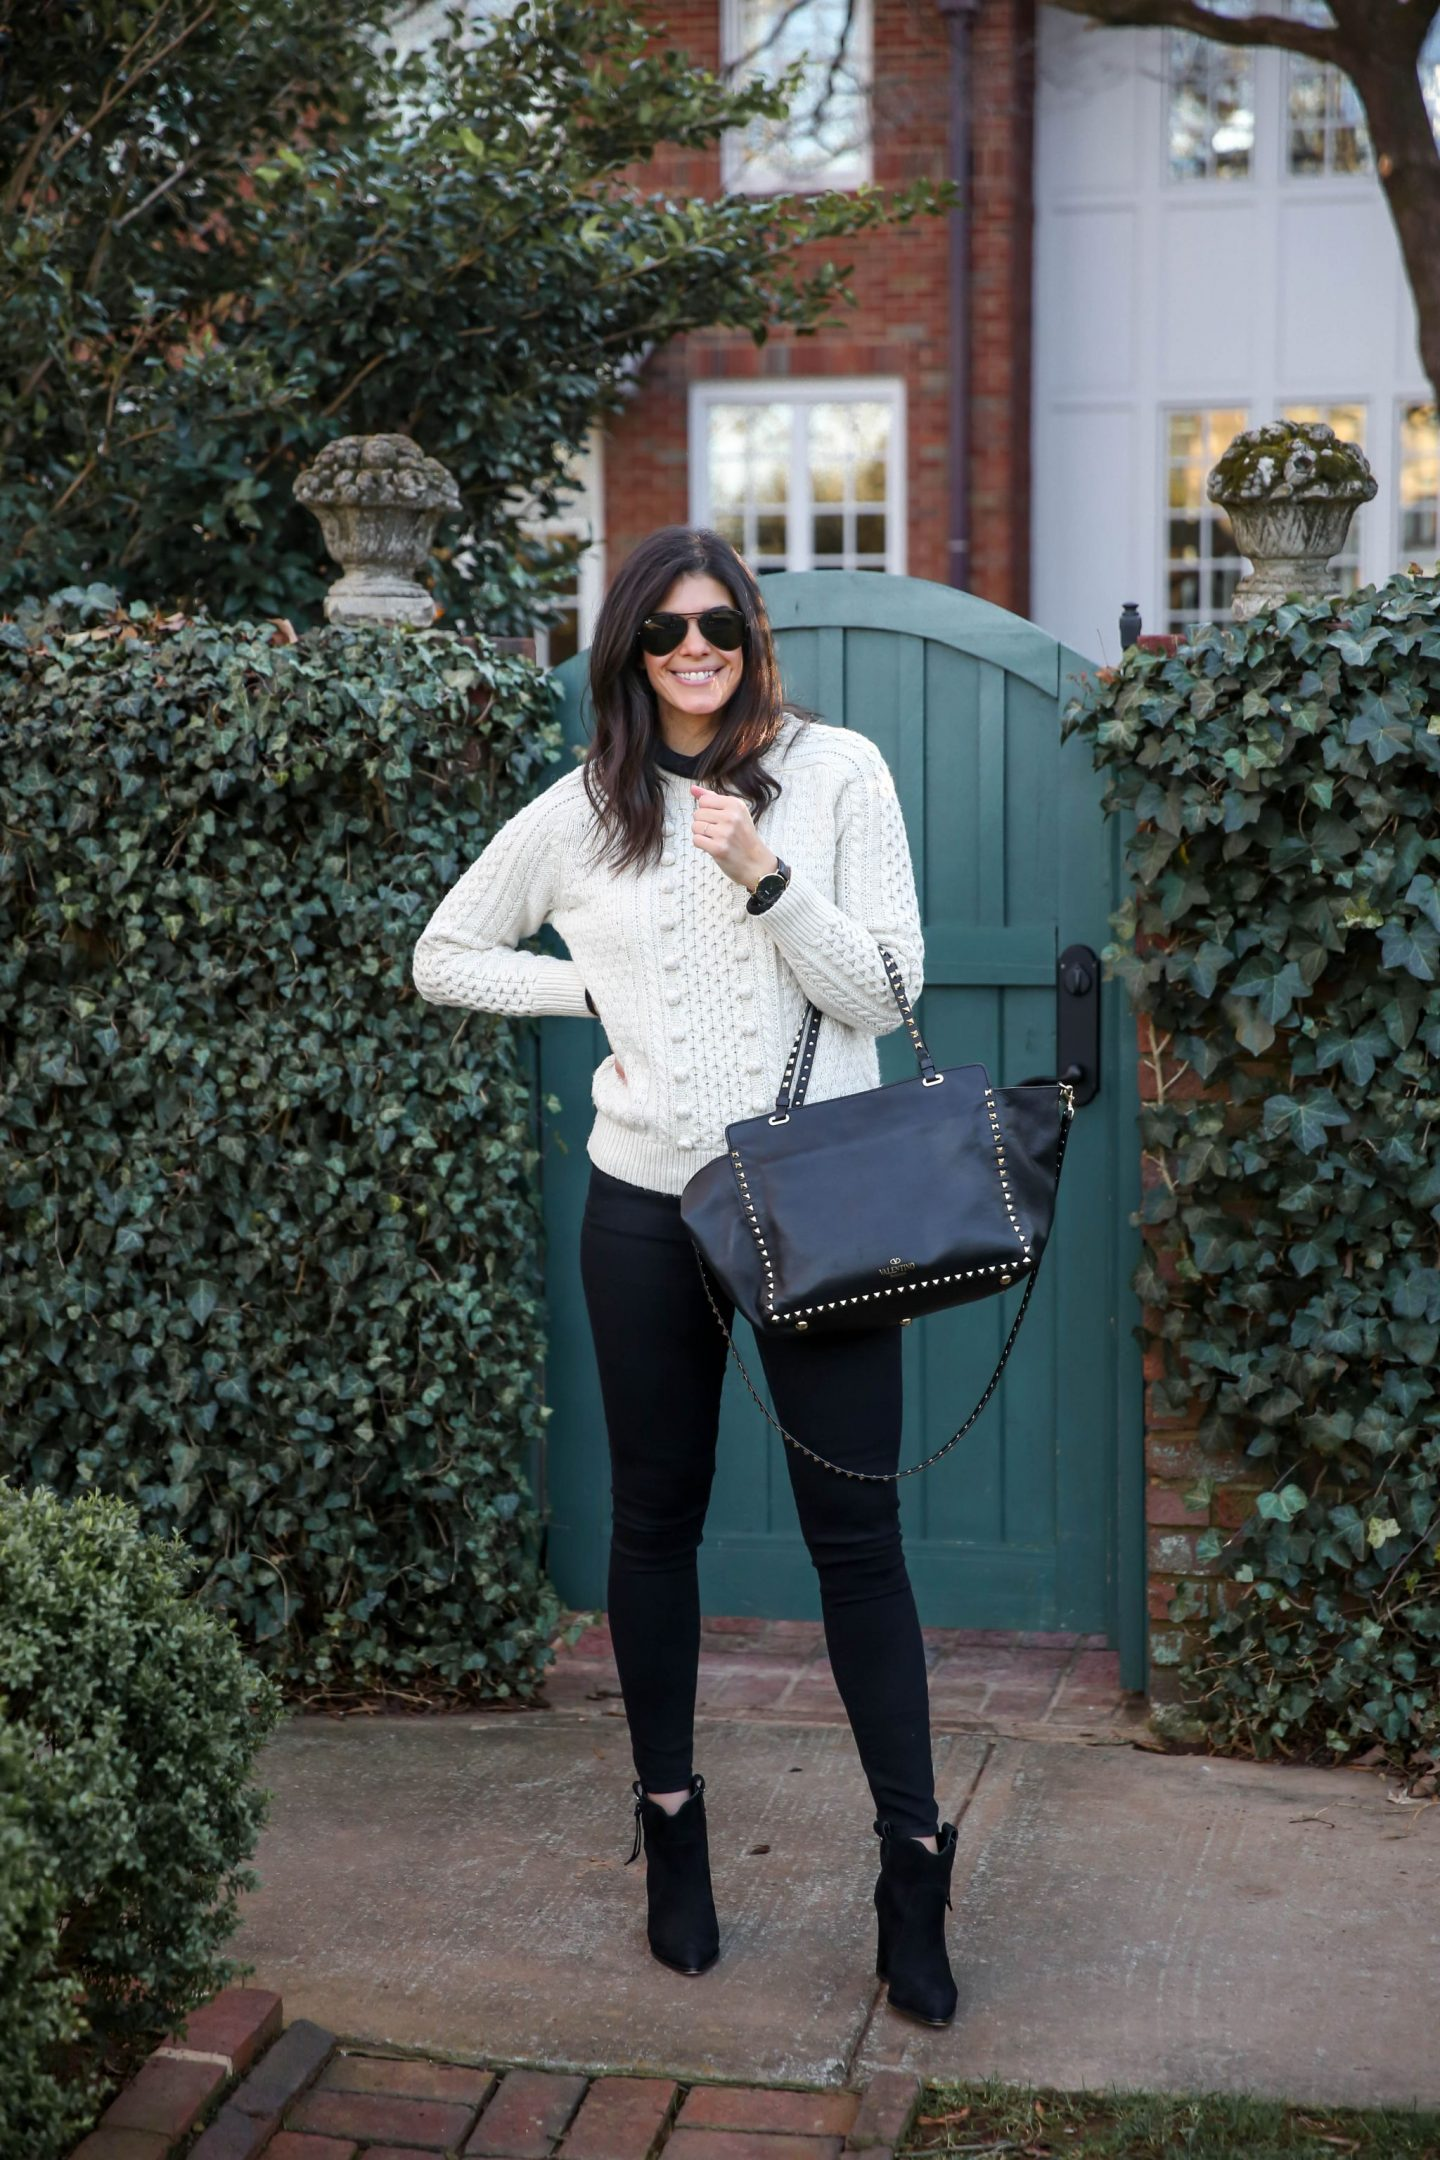 turtleneck + cable knit sweater - Lauren schwaiger style blogger